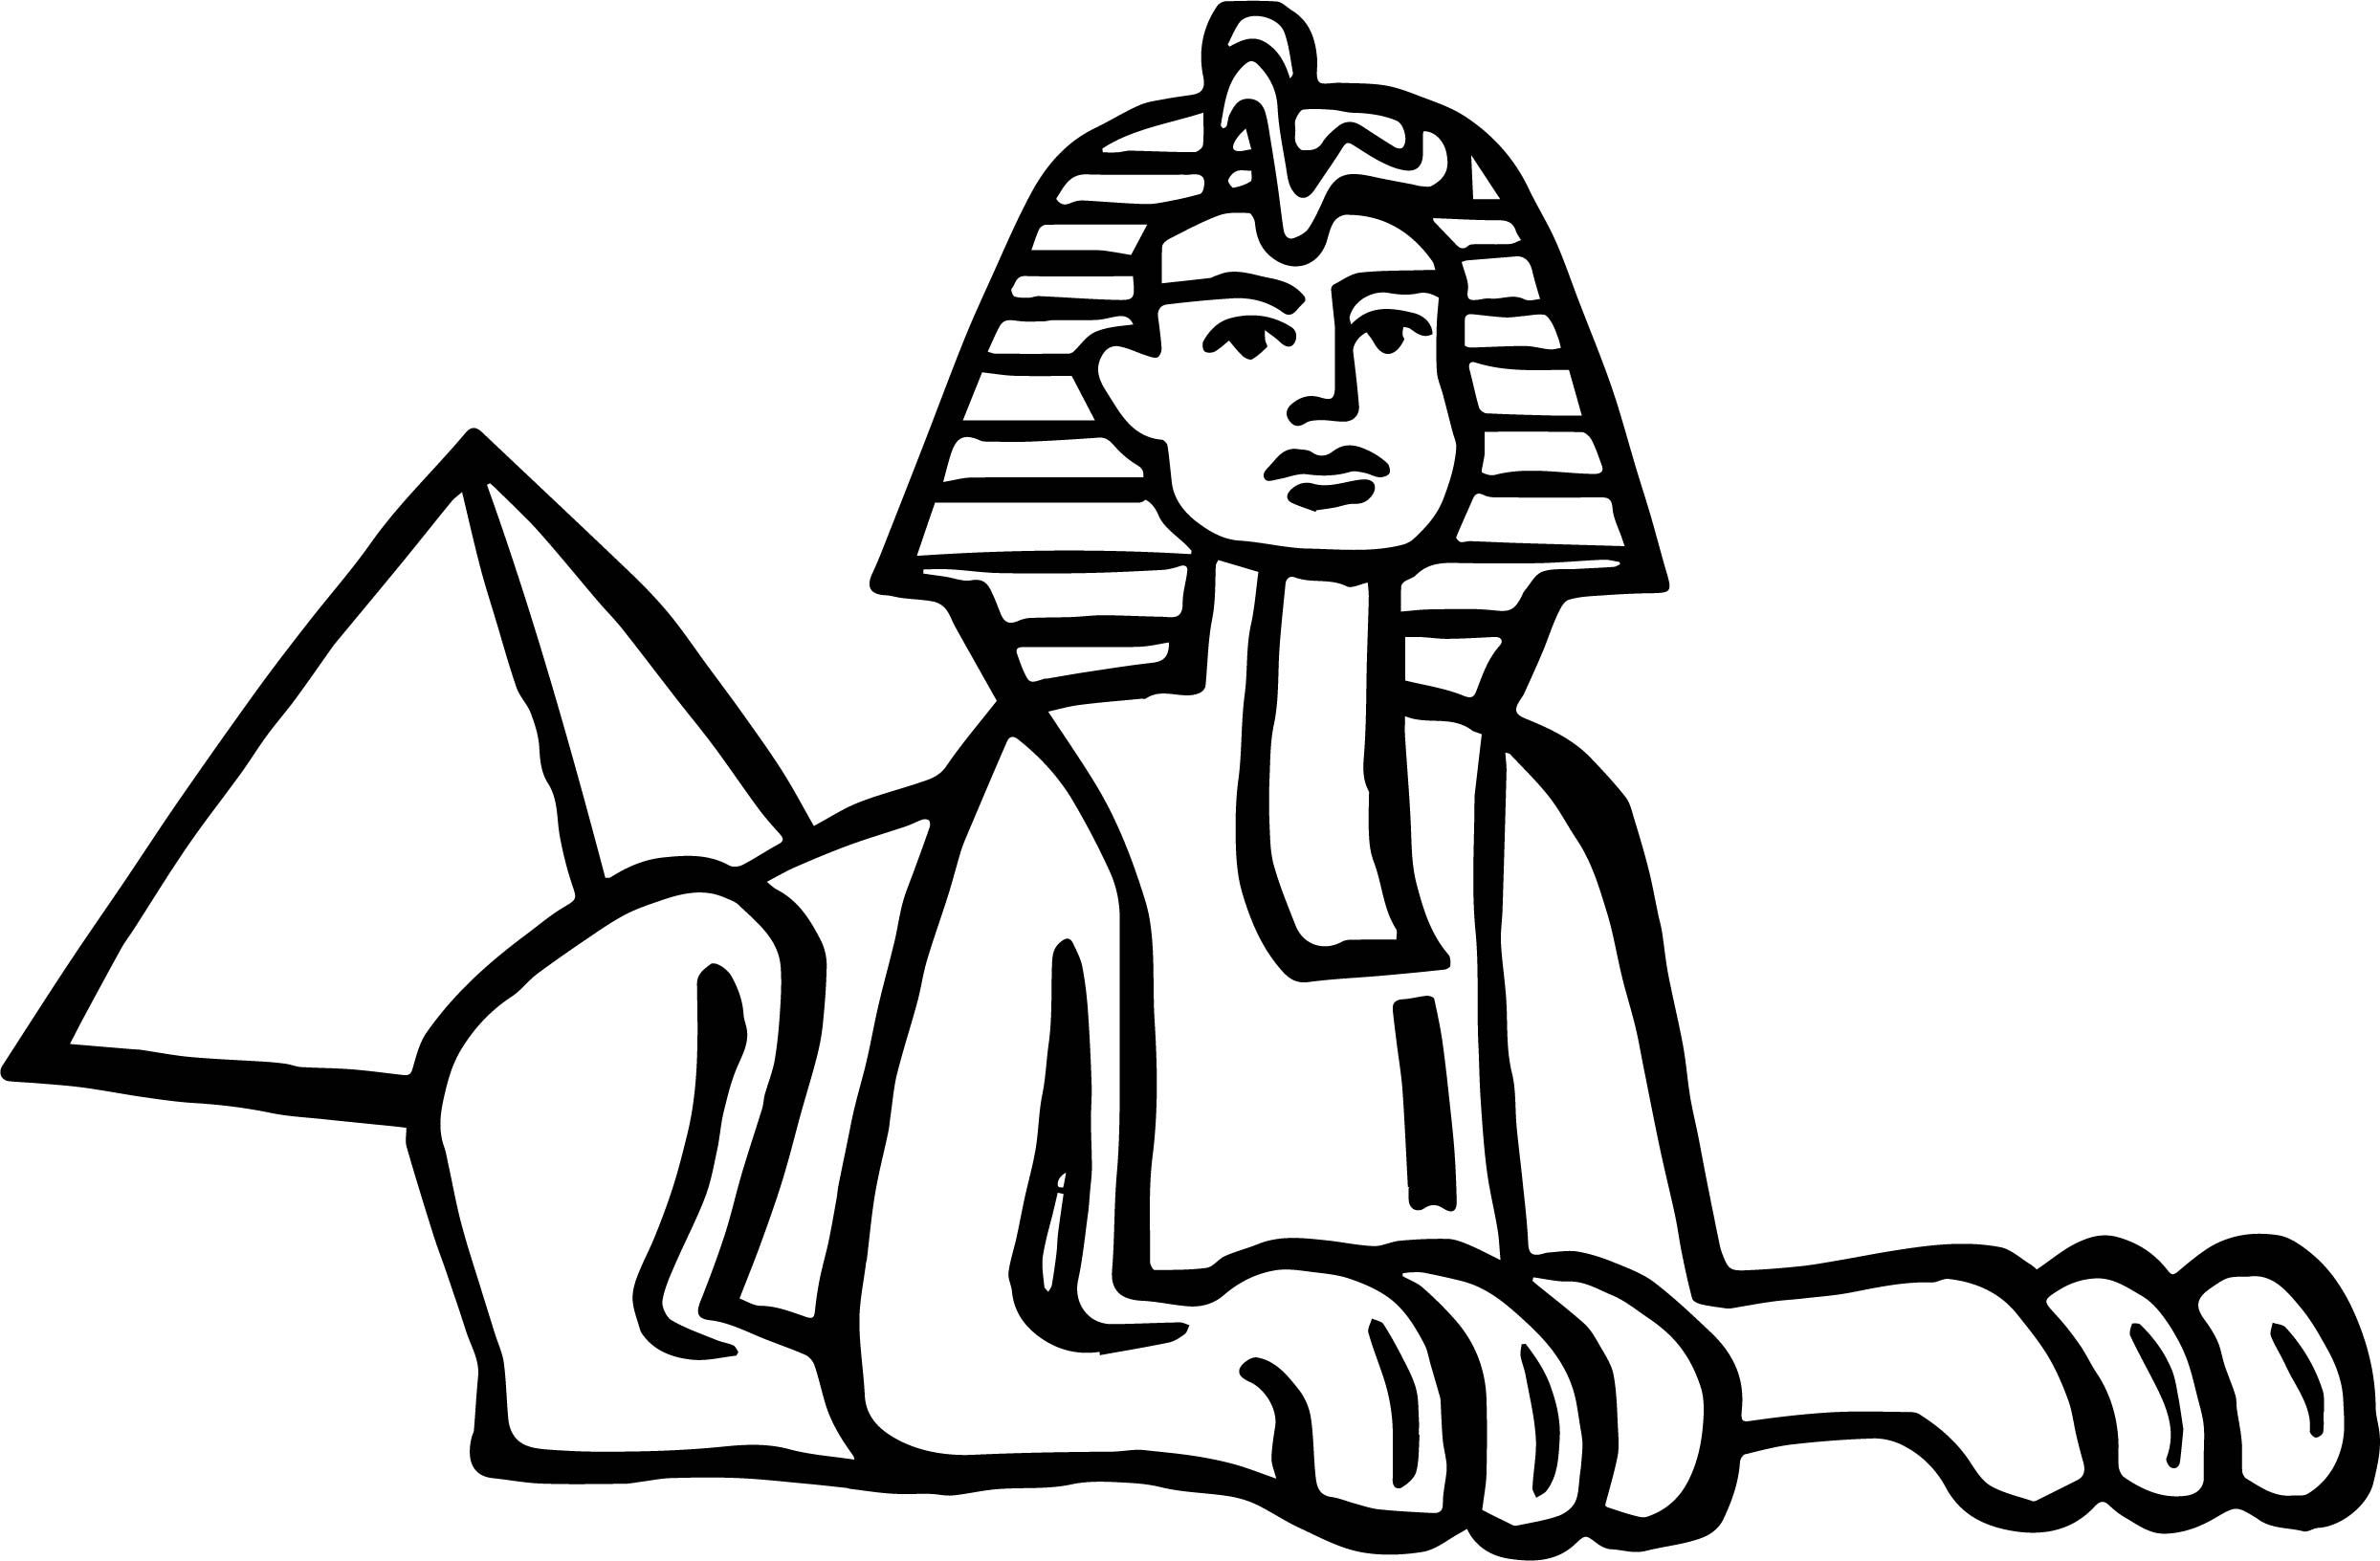 Cool Splendor Sphinx In Egypt Coloring Page